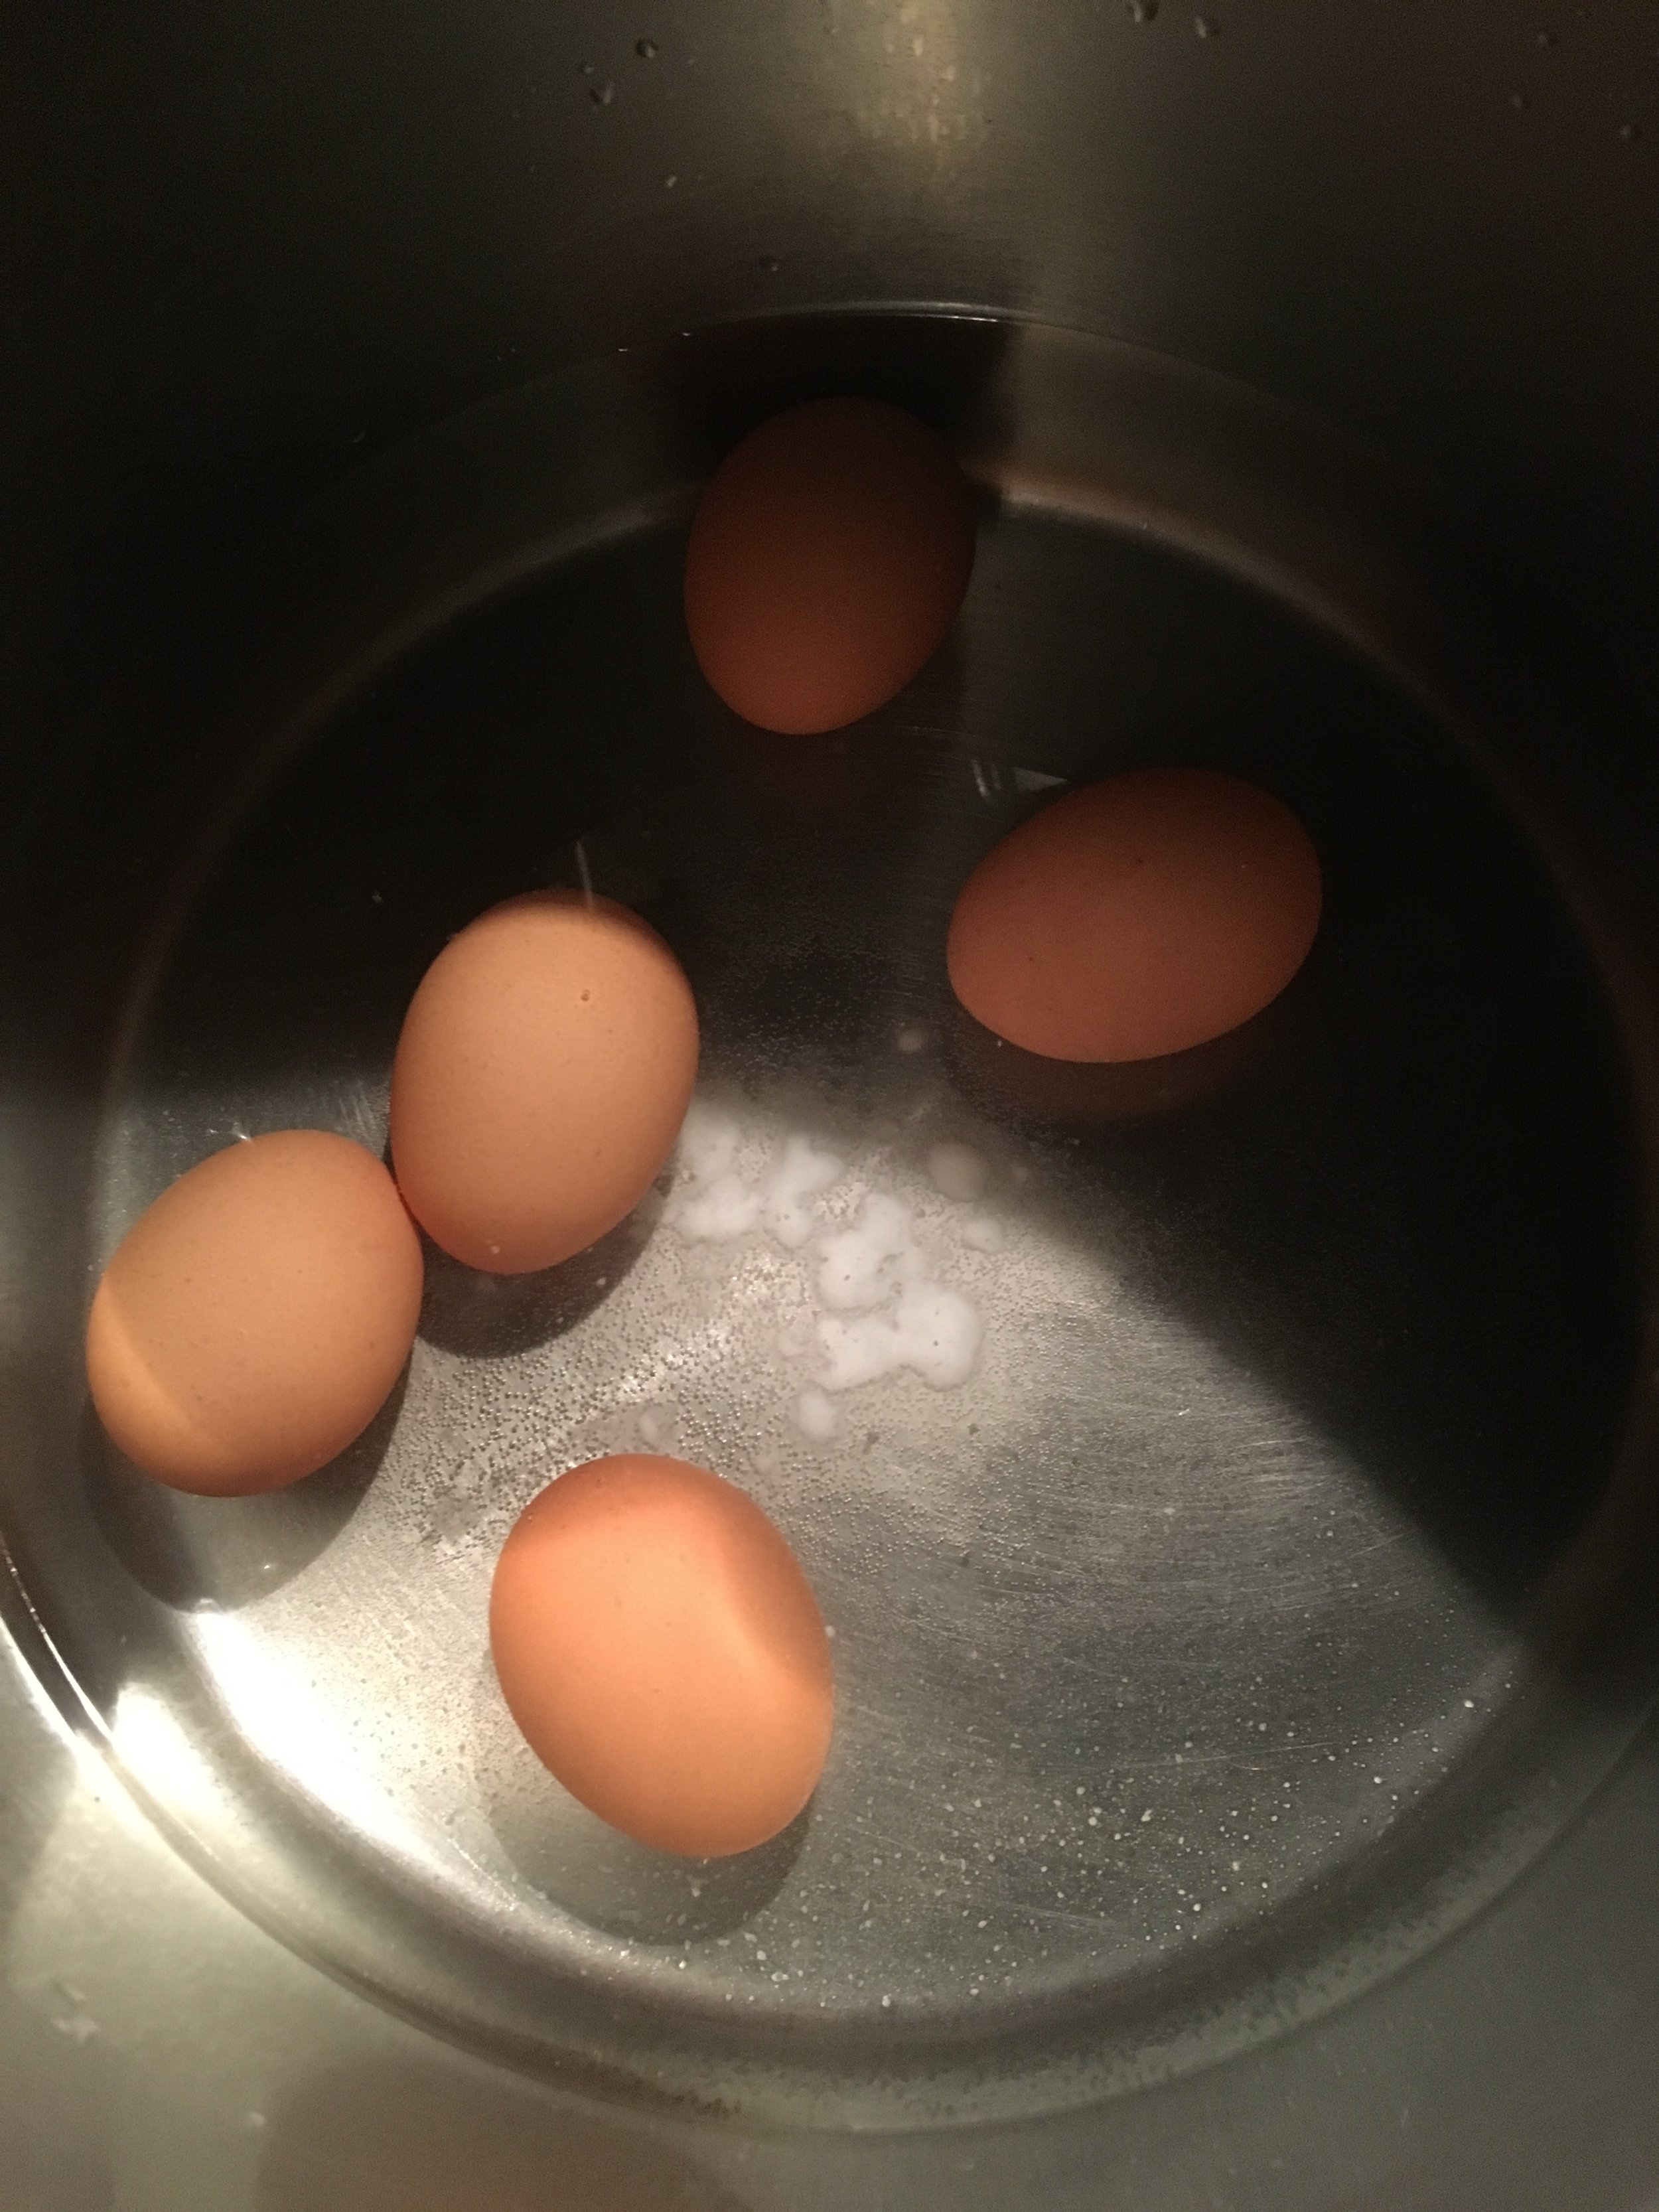 Discovered how easy it is to peel the eggs when you boil them with a bit of baking soda!